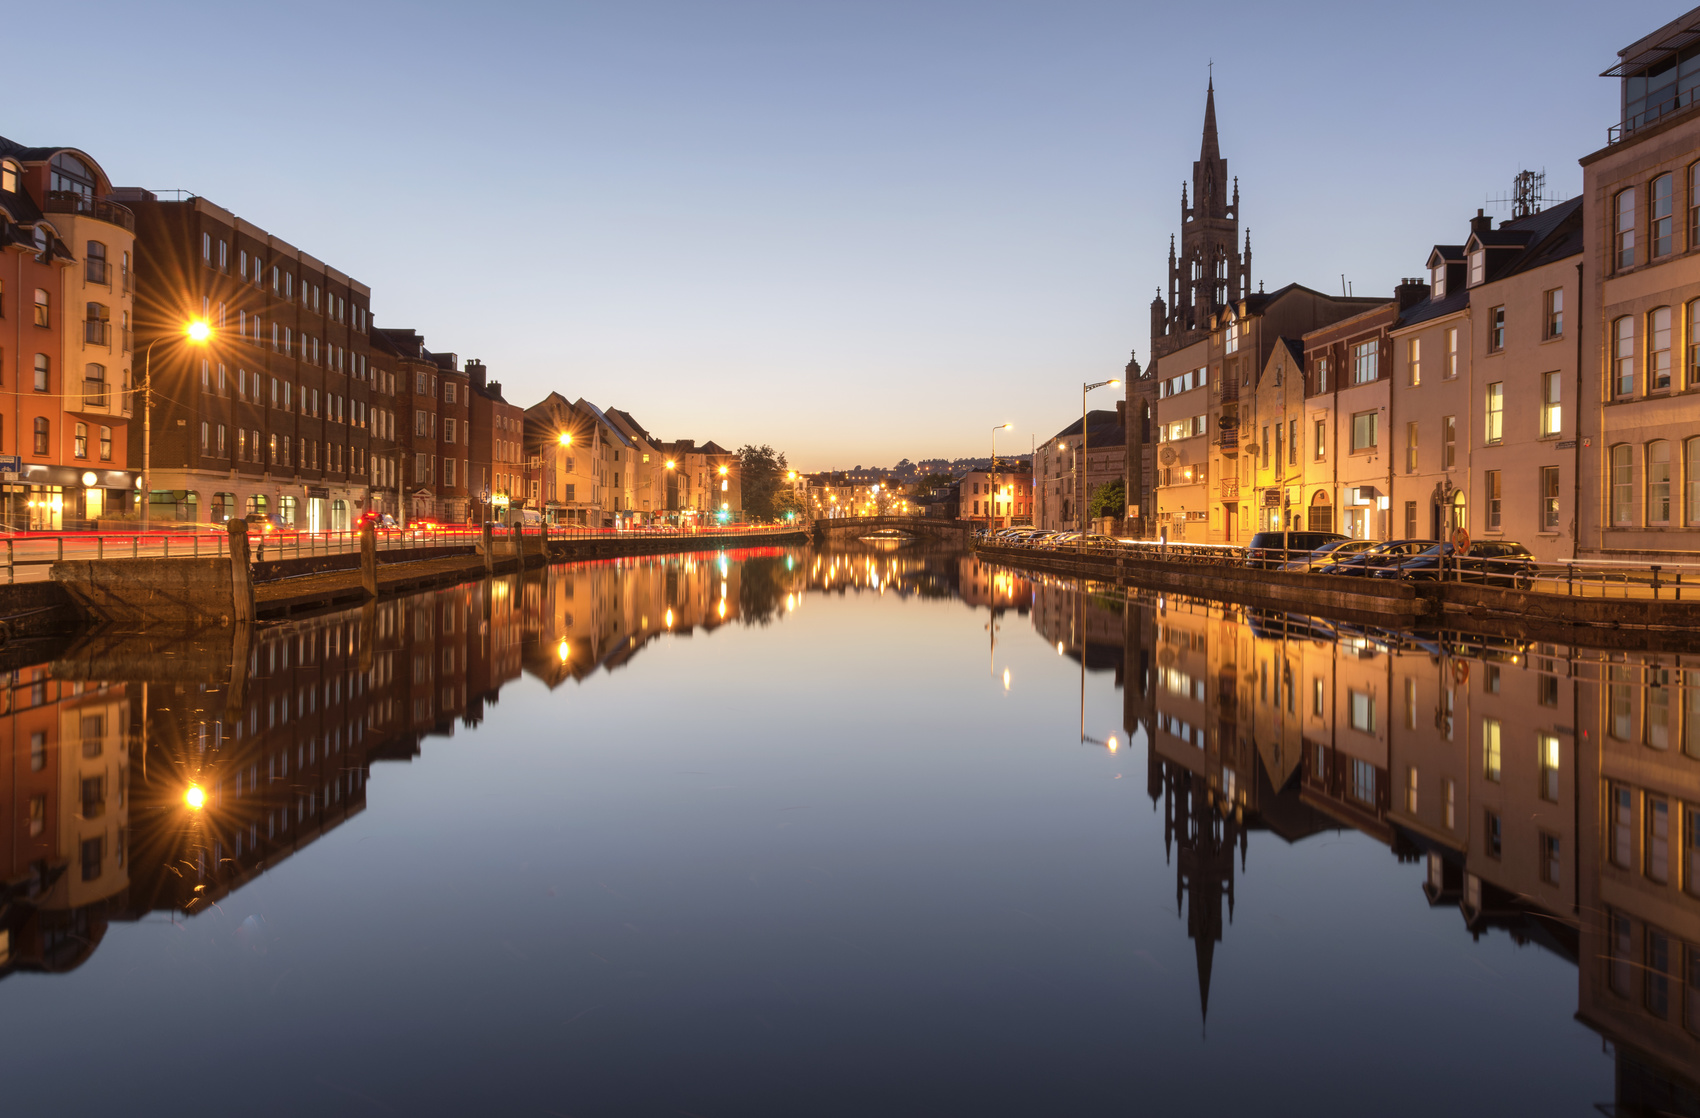 Cork is one of the cities that will explore common smart city challenges